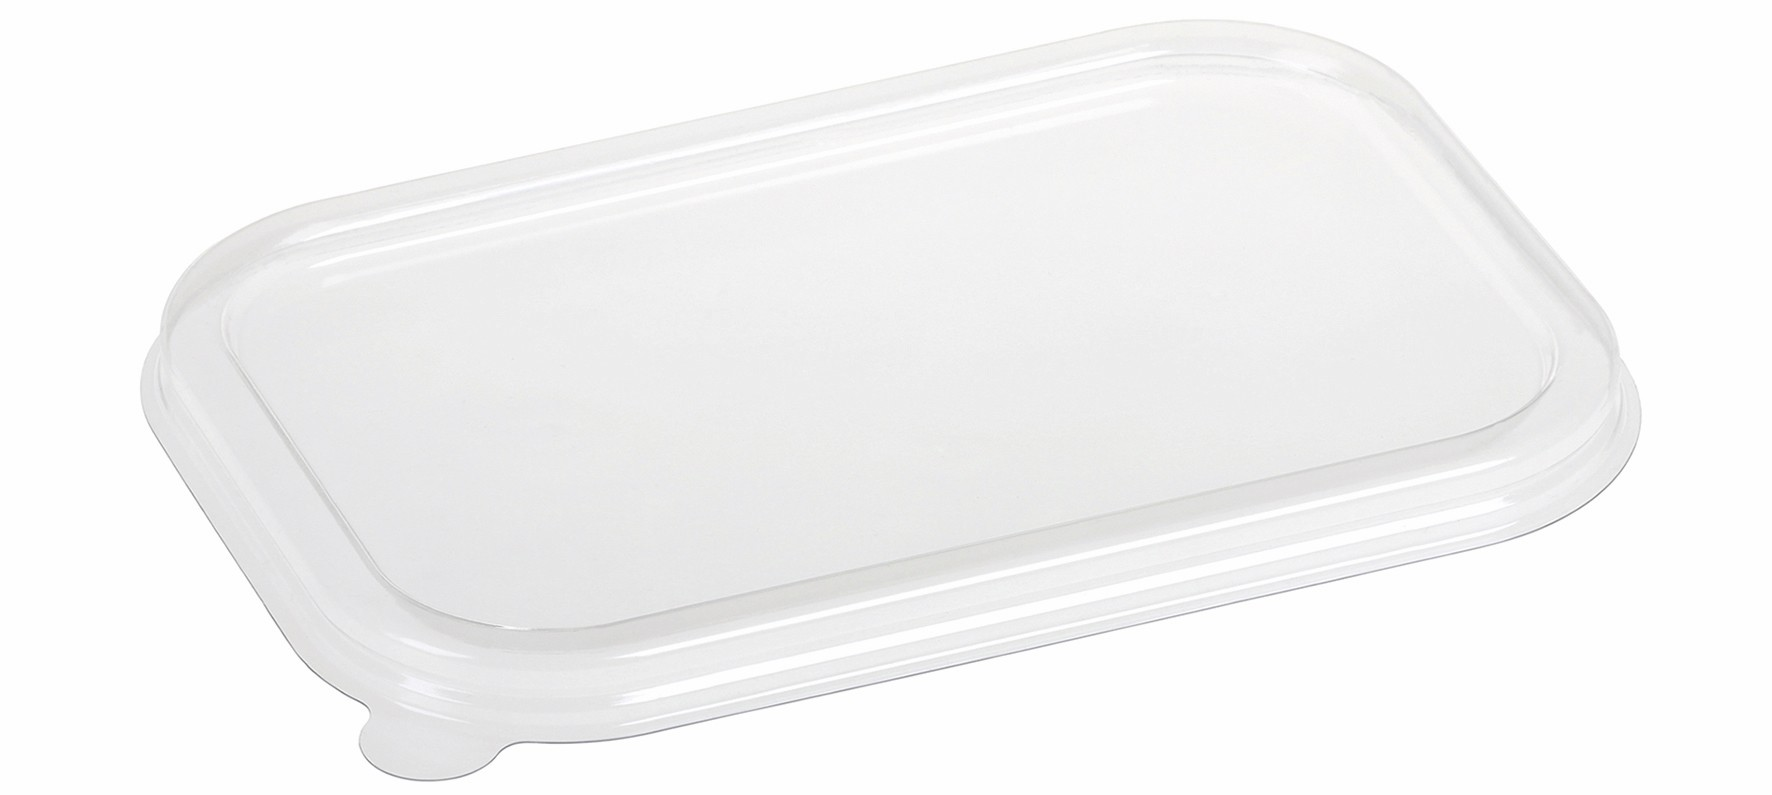 PLA lid for food tray 23x15 cm